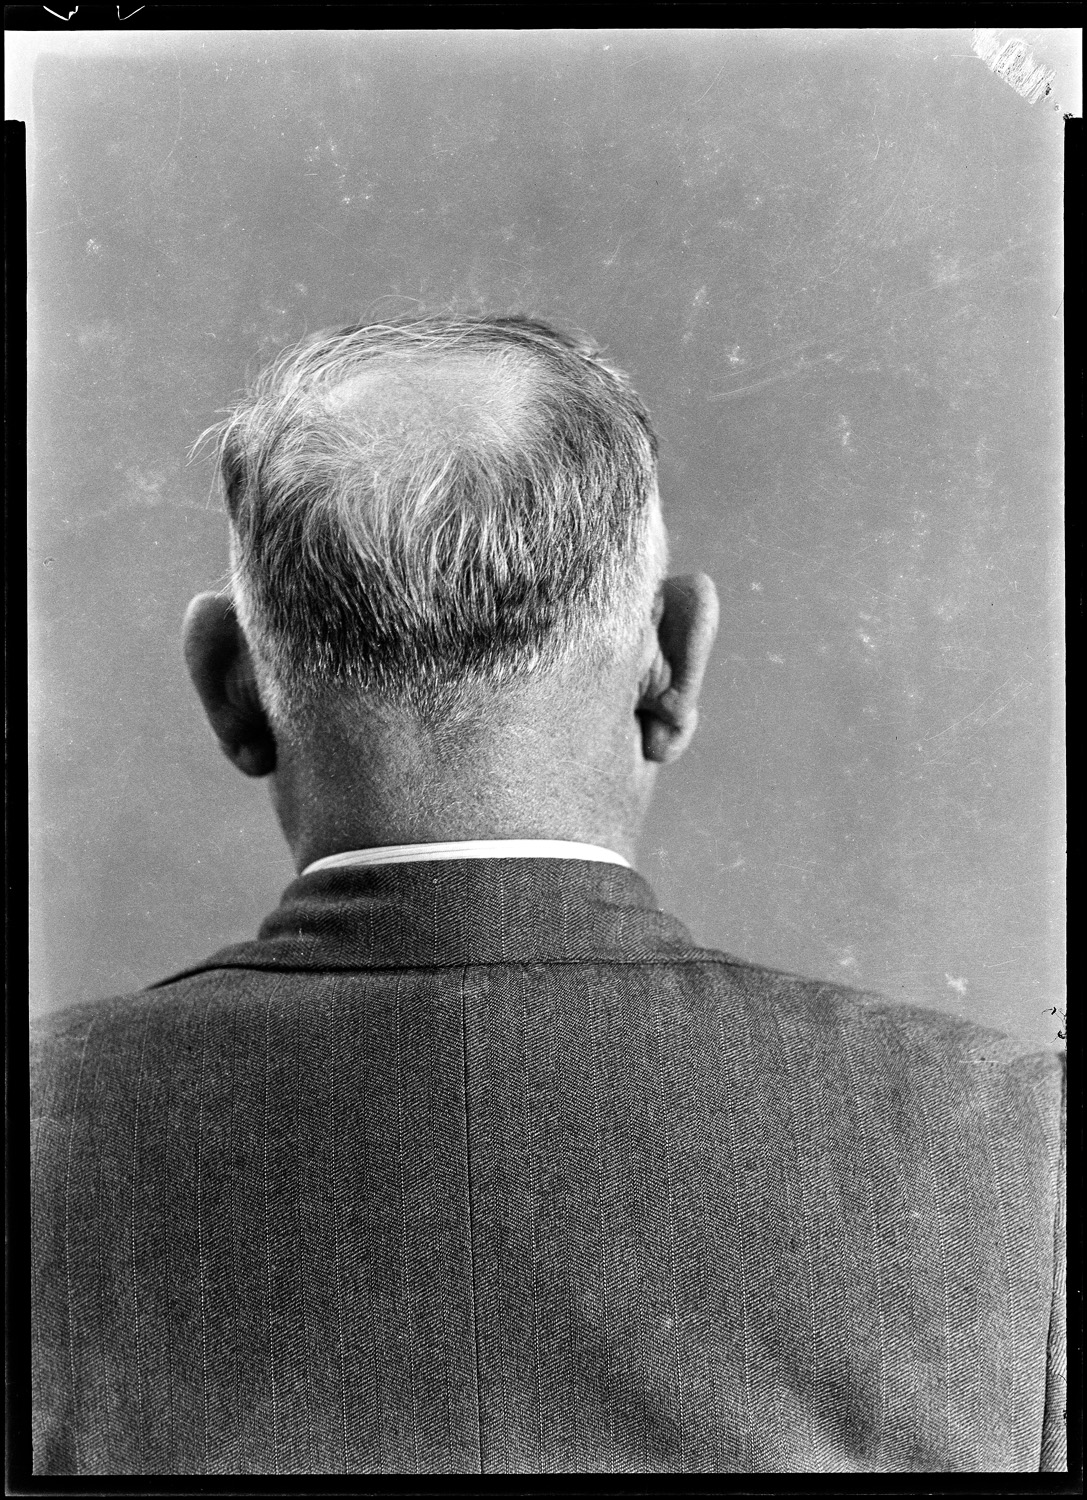 Cellulose negative in loose files, portrait of bald man from rear, location unknown.